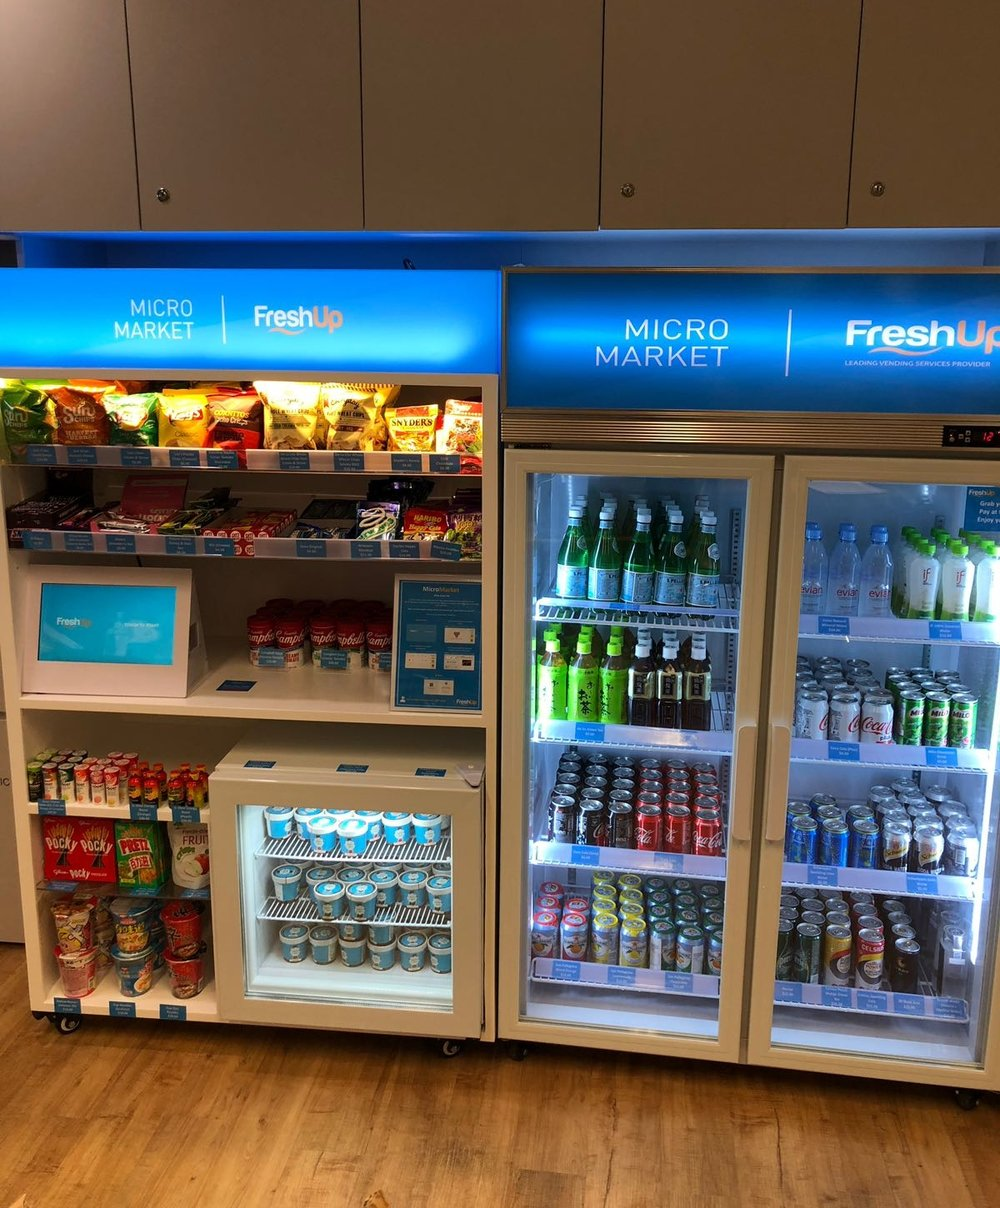 Freshup, vending machine hk, interactive, food, beverage, smart retail, convenient, vending services, professional, investment banks, societe generale, micromarket, self-served